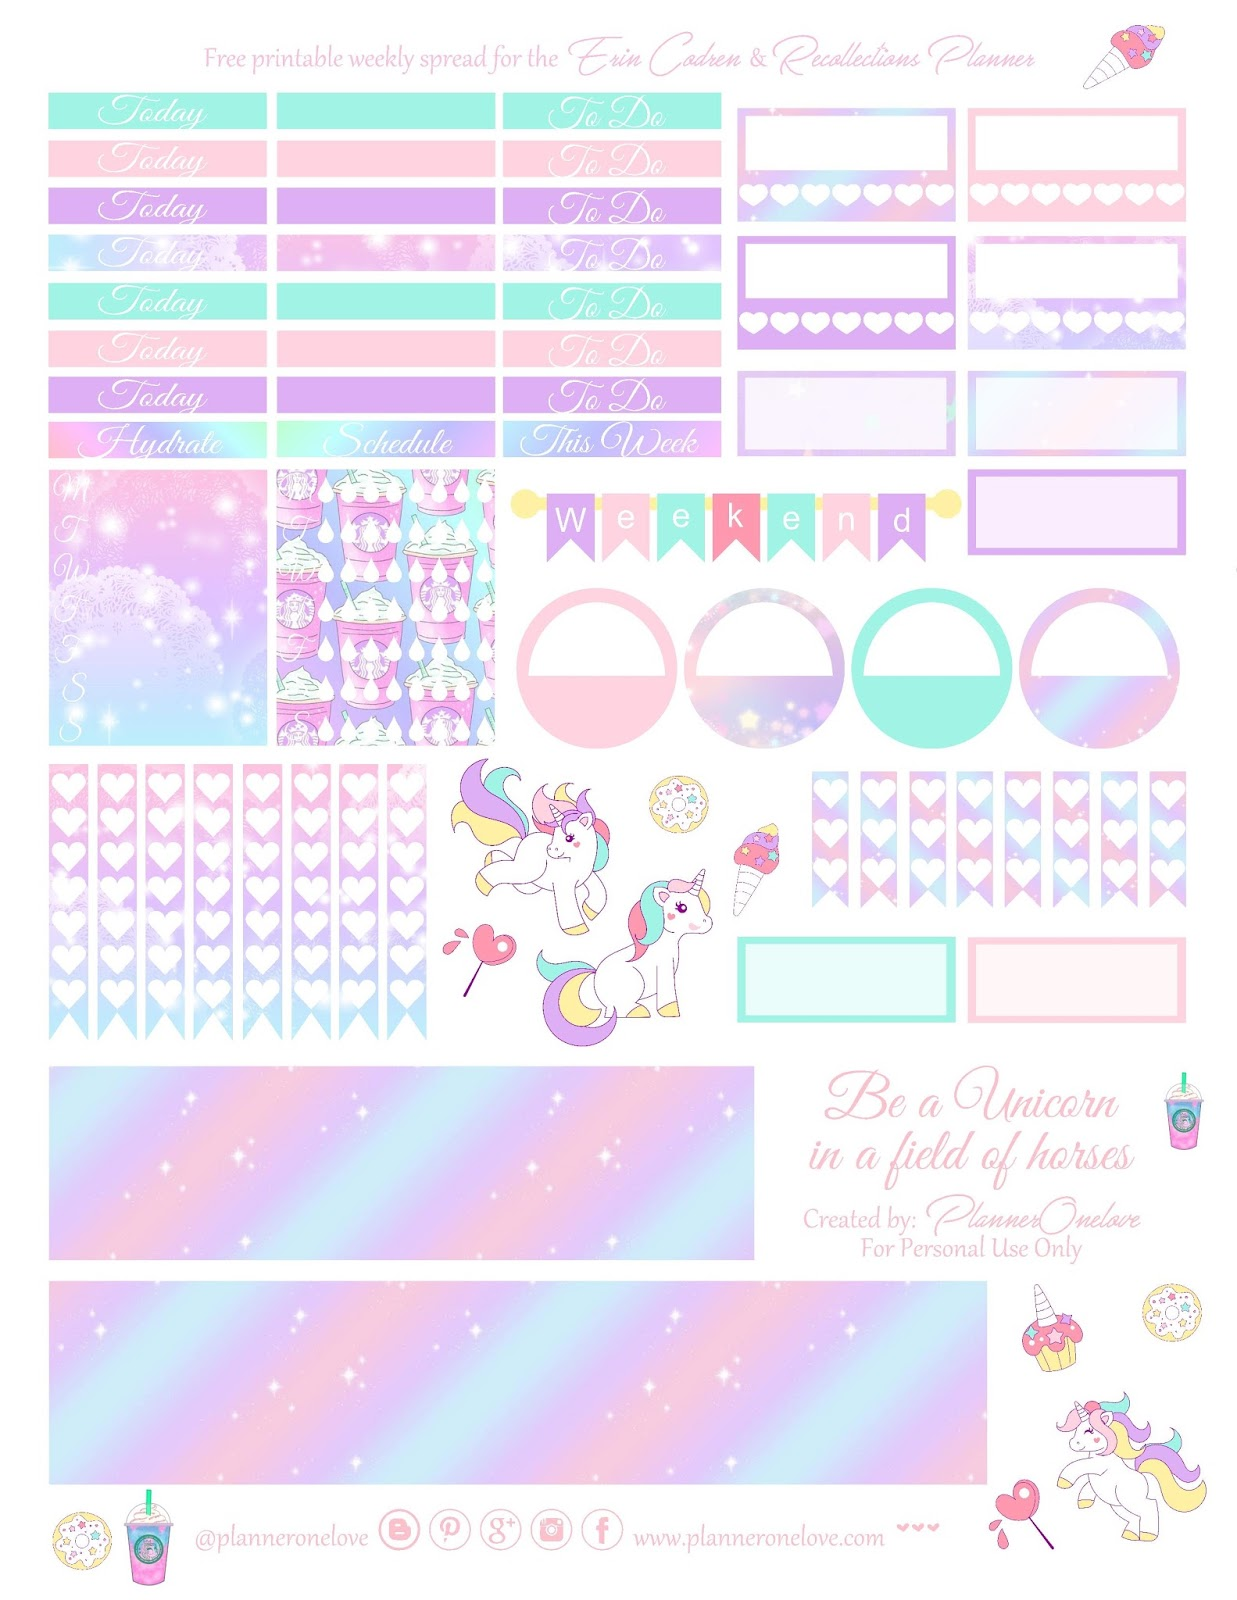 picture regarding Be a Unicorn in a Field of Horses Free Printable referred to as No cost Unicorn printable unfold for the Erin Condren